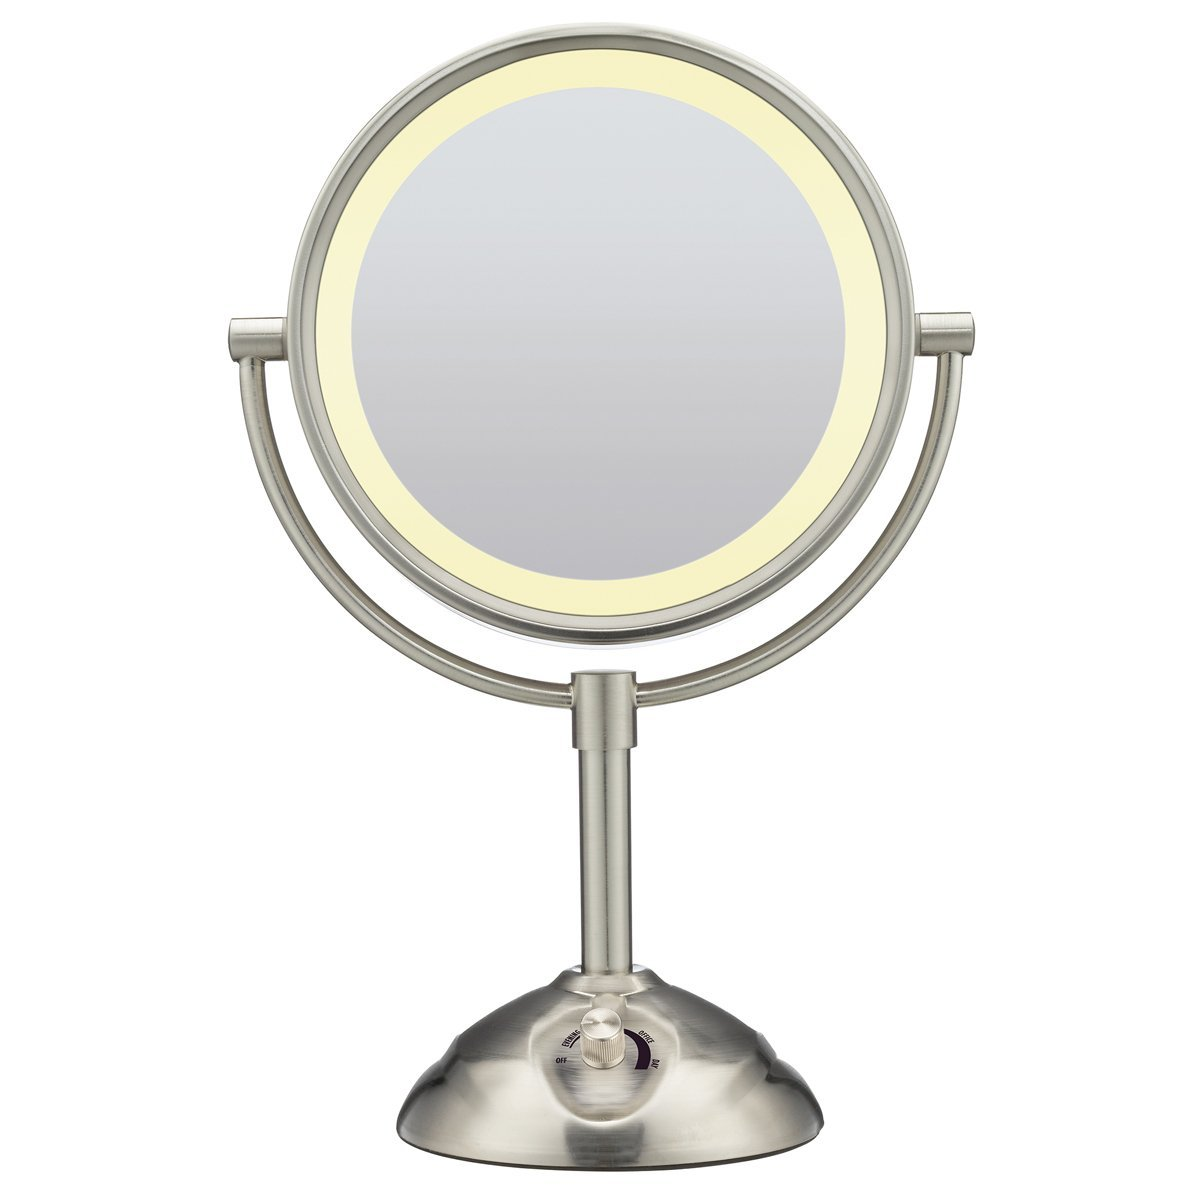 Conair Lighted Mirror | Conair Lighted Makeup Mirror | Conair Makeup Mirror Bulb Replacement